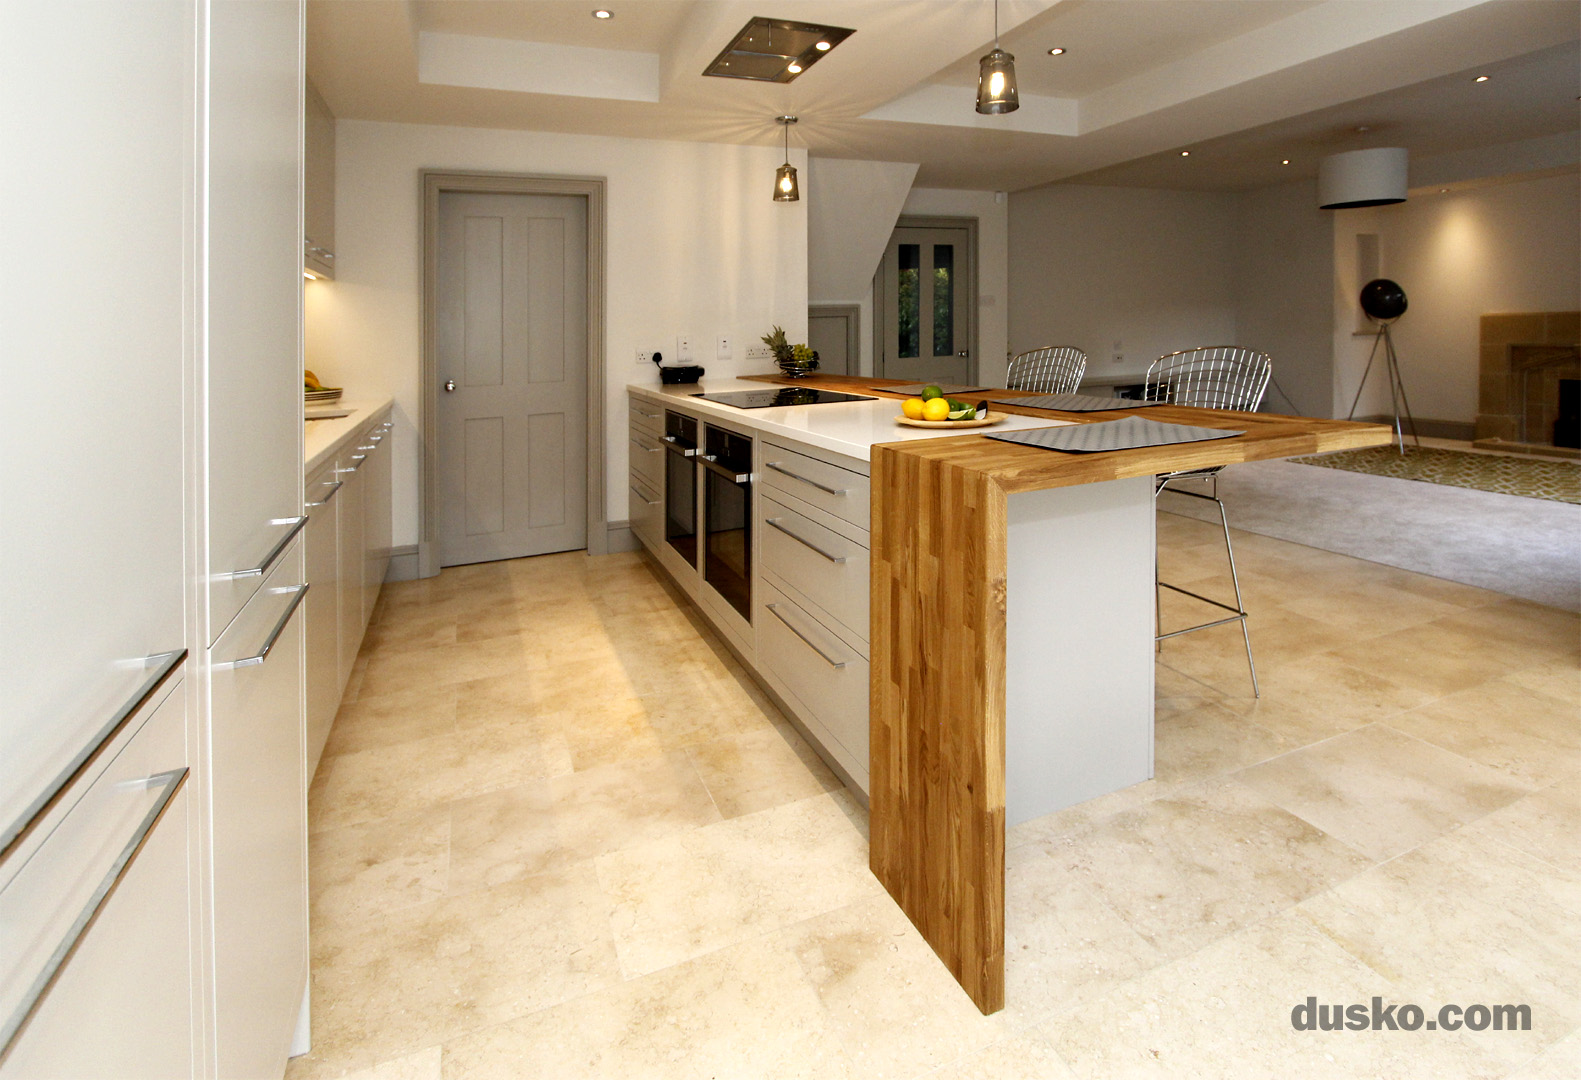 Contemporary Open Plan Kitchen and Dining Area in Handforth, Cheshire